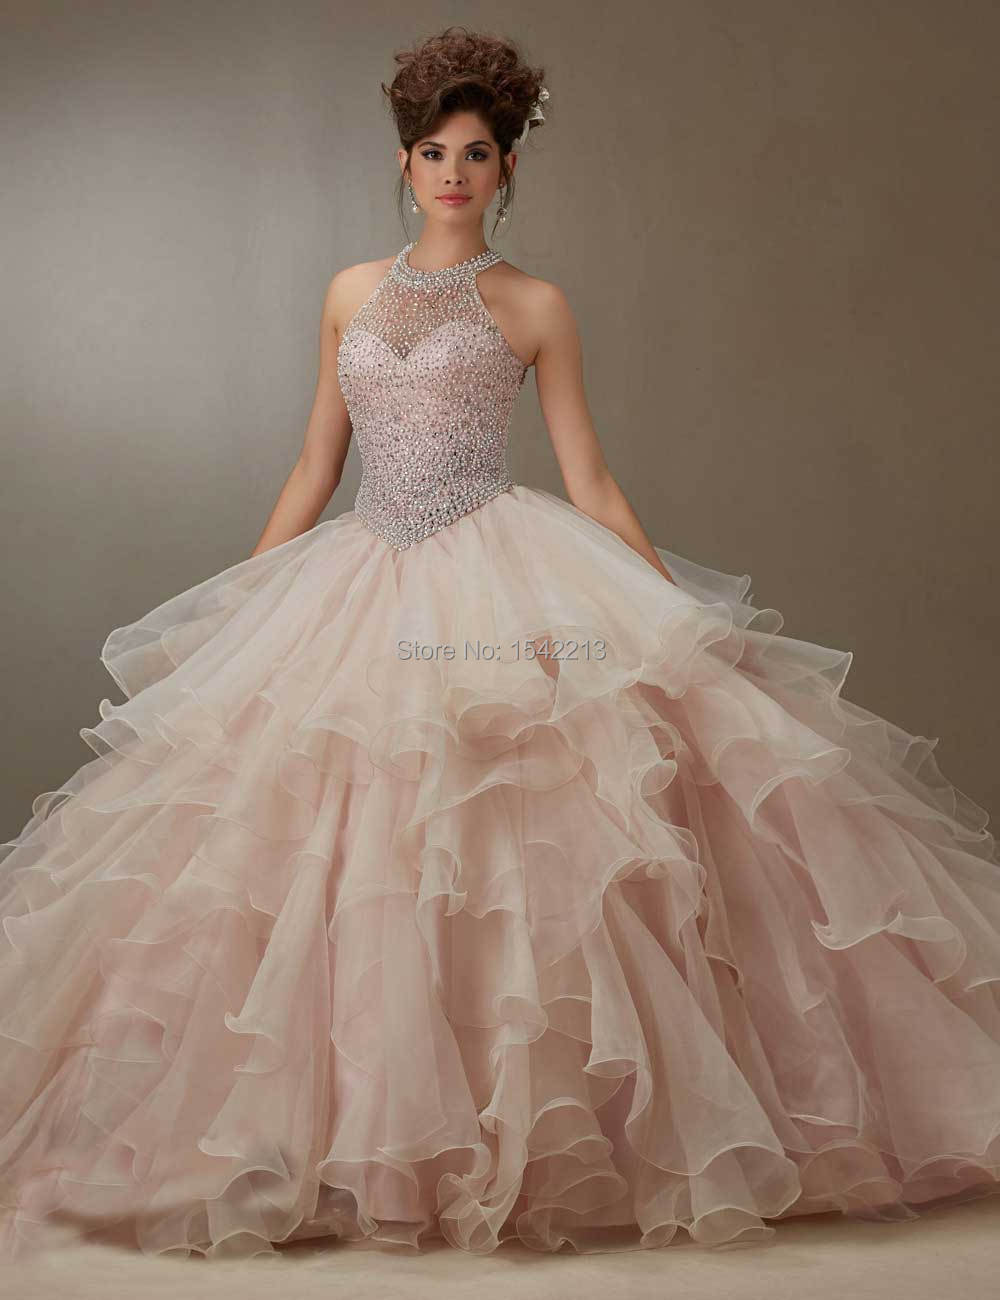 b87f767a92 Off the Shoulder Light Blue Quinceanera Dress Heavy Beaded Pearls Ball Gown  Style With Free Wrap New Arrival 2017-in Quinceanera Dresses from Weddings  ...